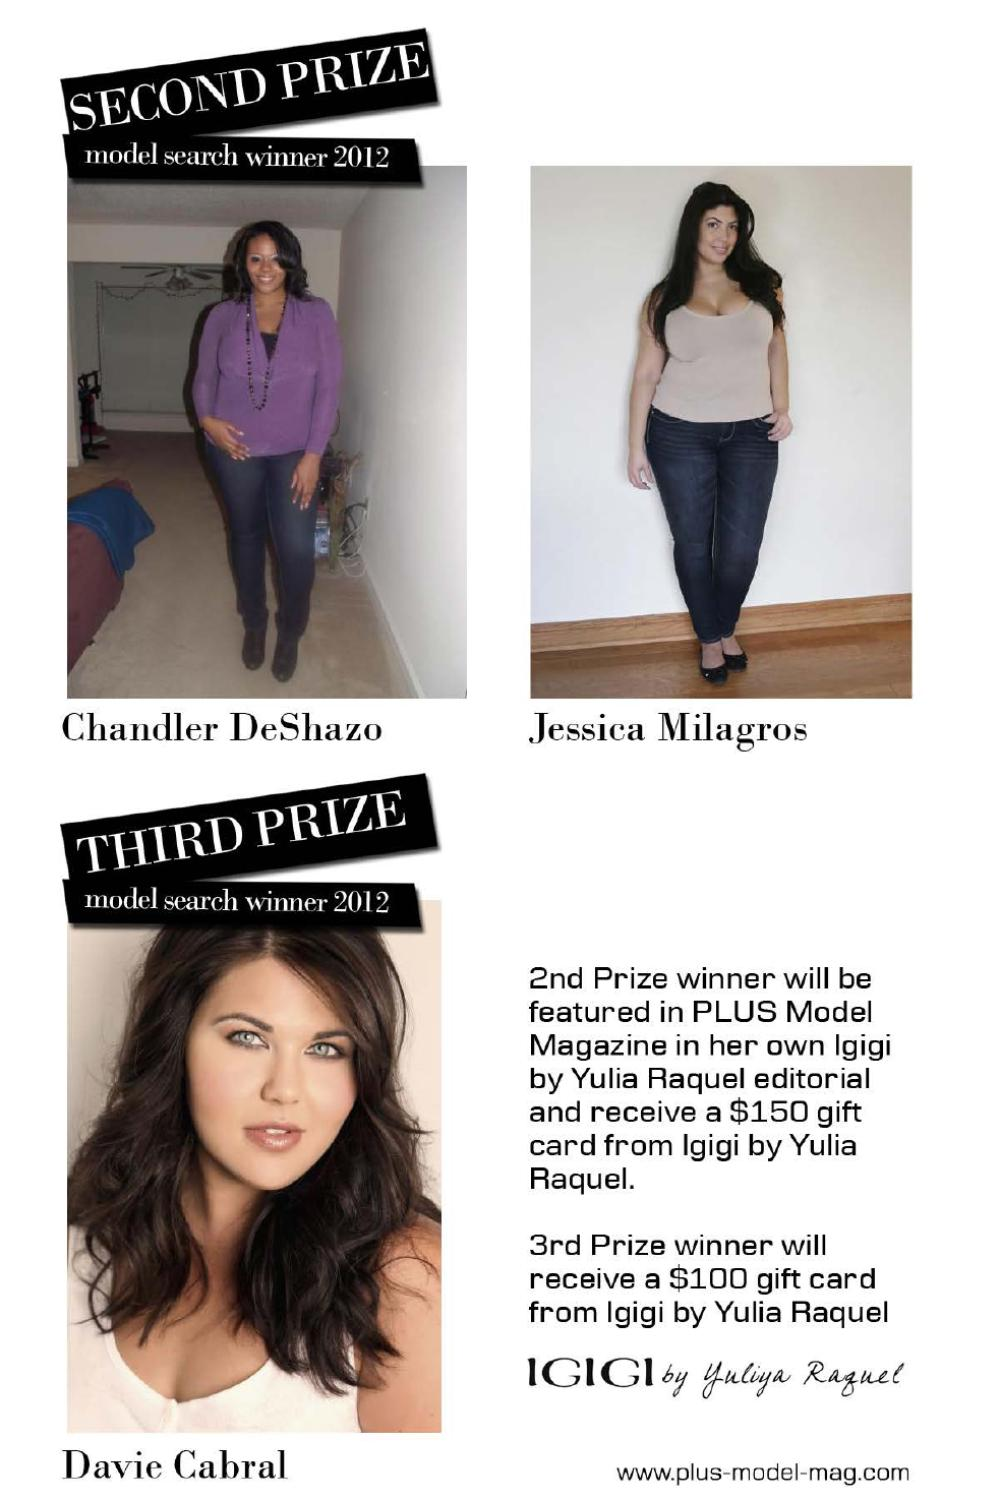 db2ce492e08 PLUS Model Magazine: March 2012 Issue Plus Size Featuring Griselangel Paula  by PLUS Model Magazine - issuu